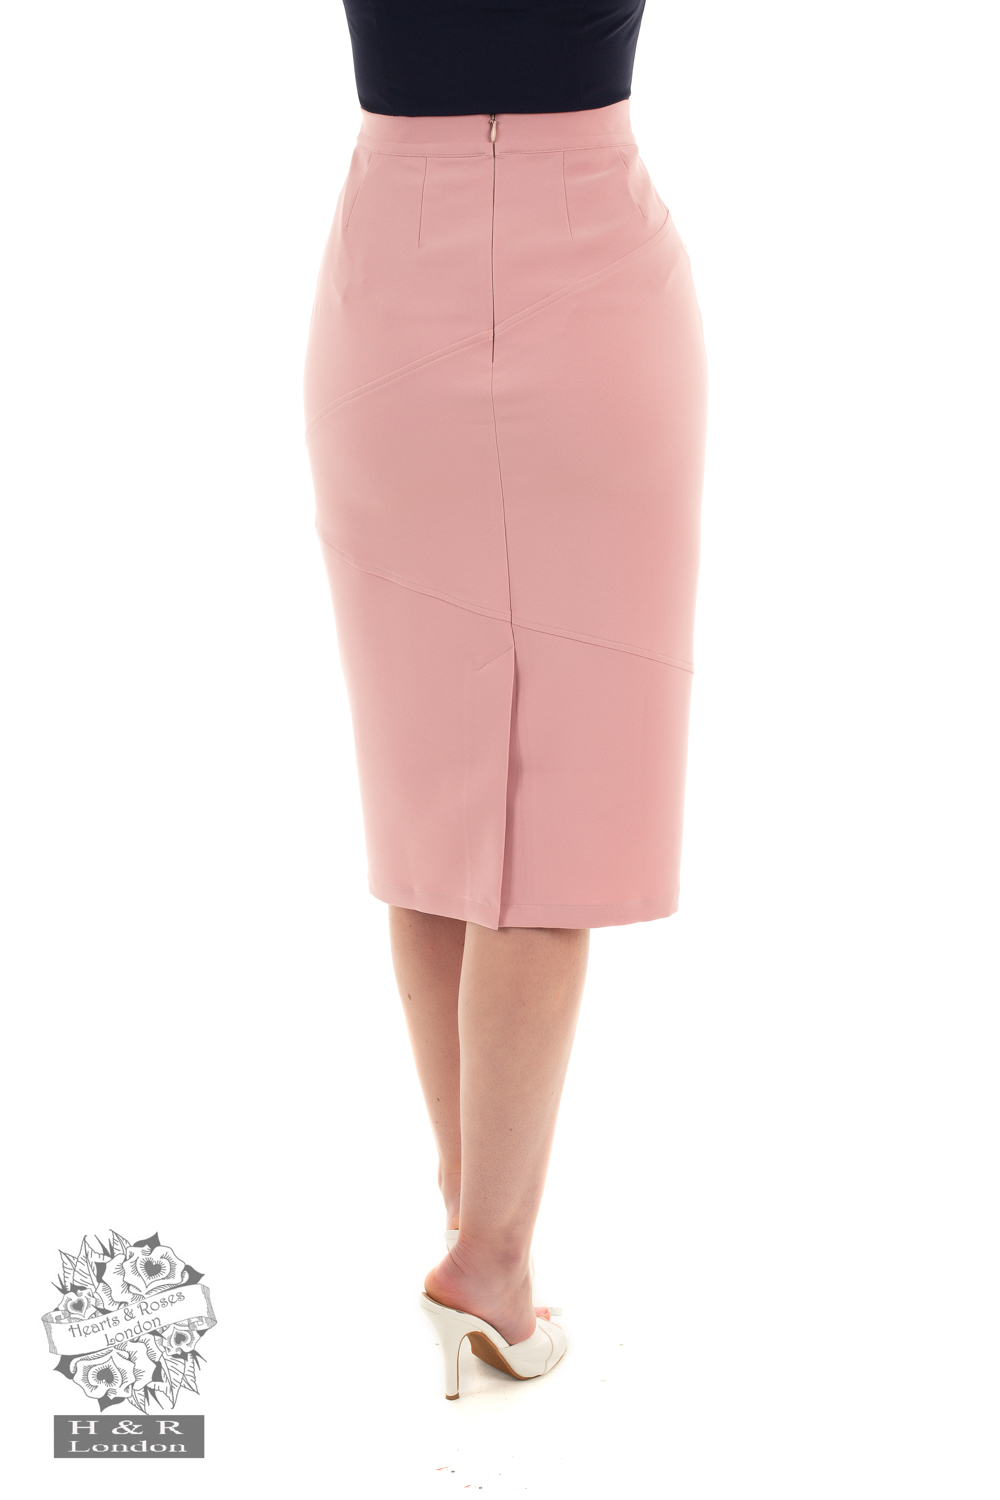 The Willow Wiggle Skirt